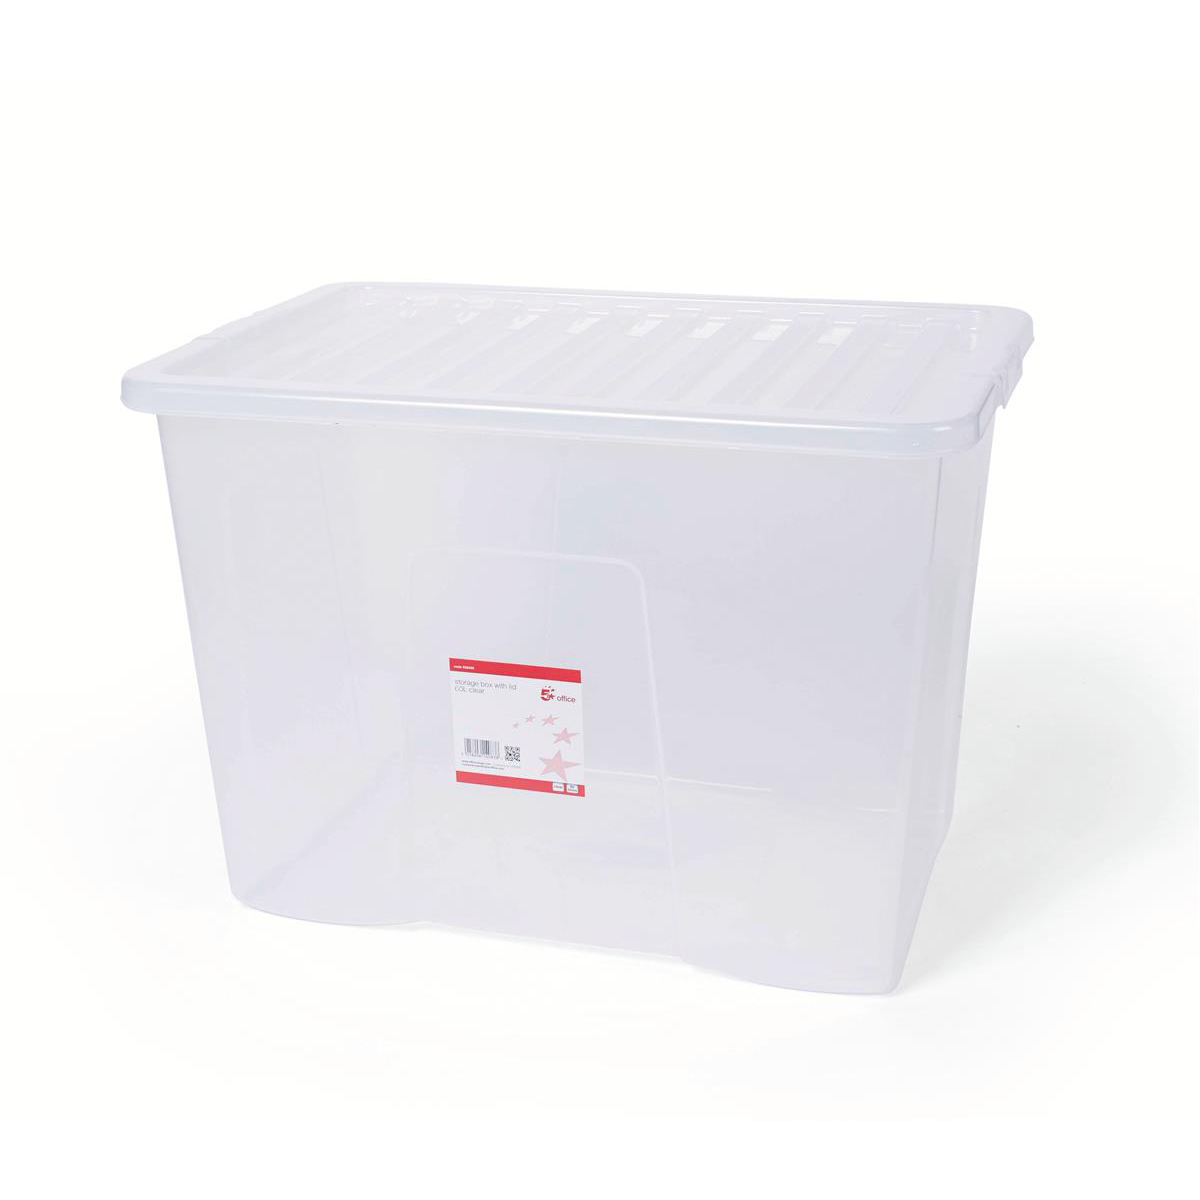 Image for 5 Star Office Storage Box Plastic with Lid Stackable 60 Litre Clear